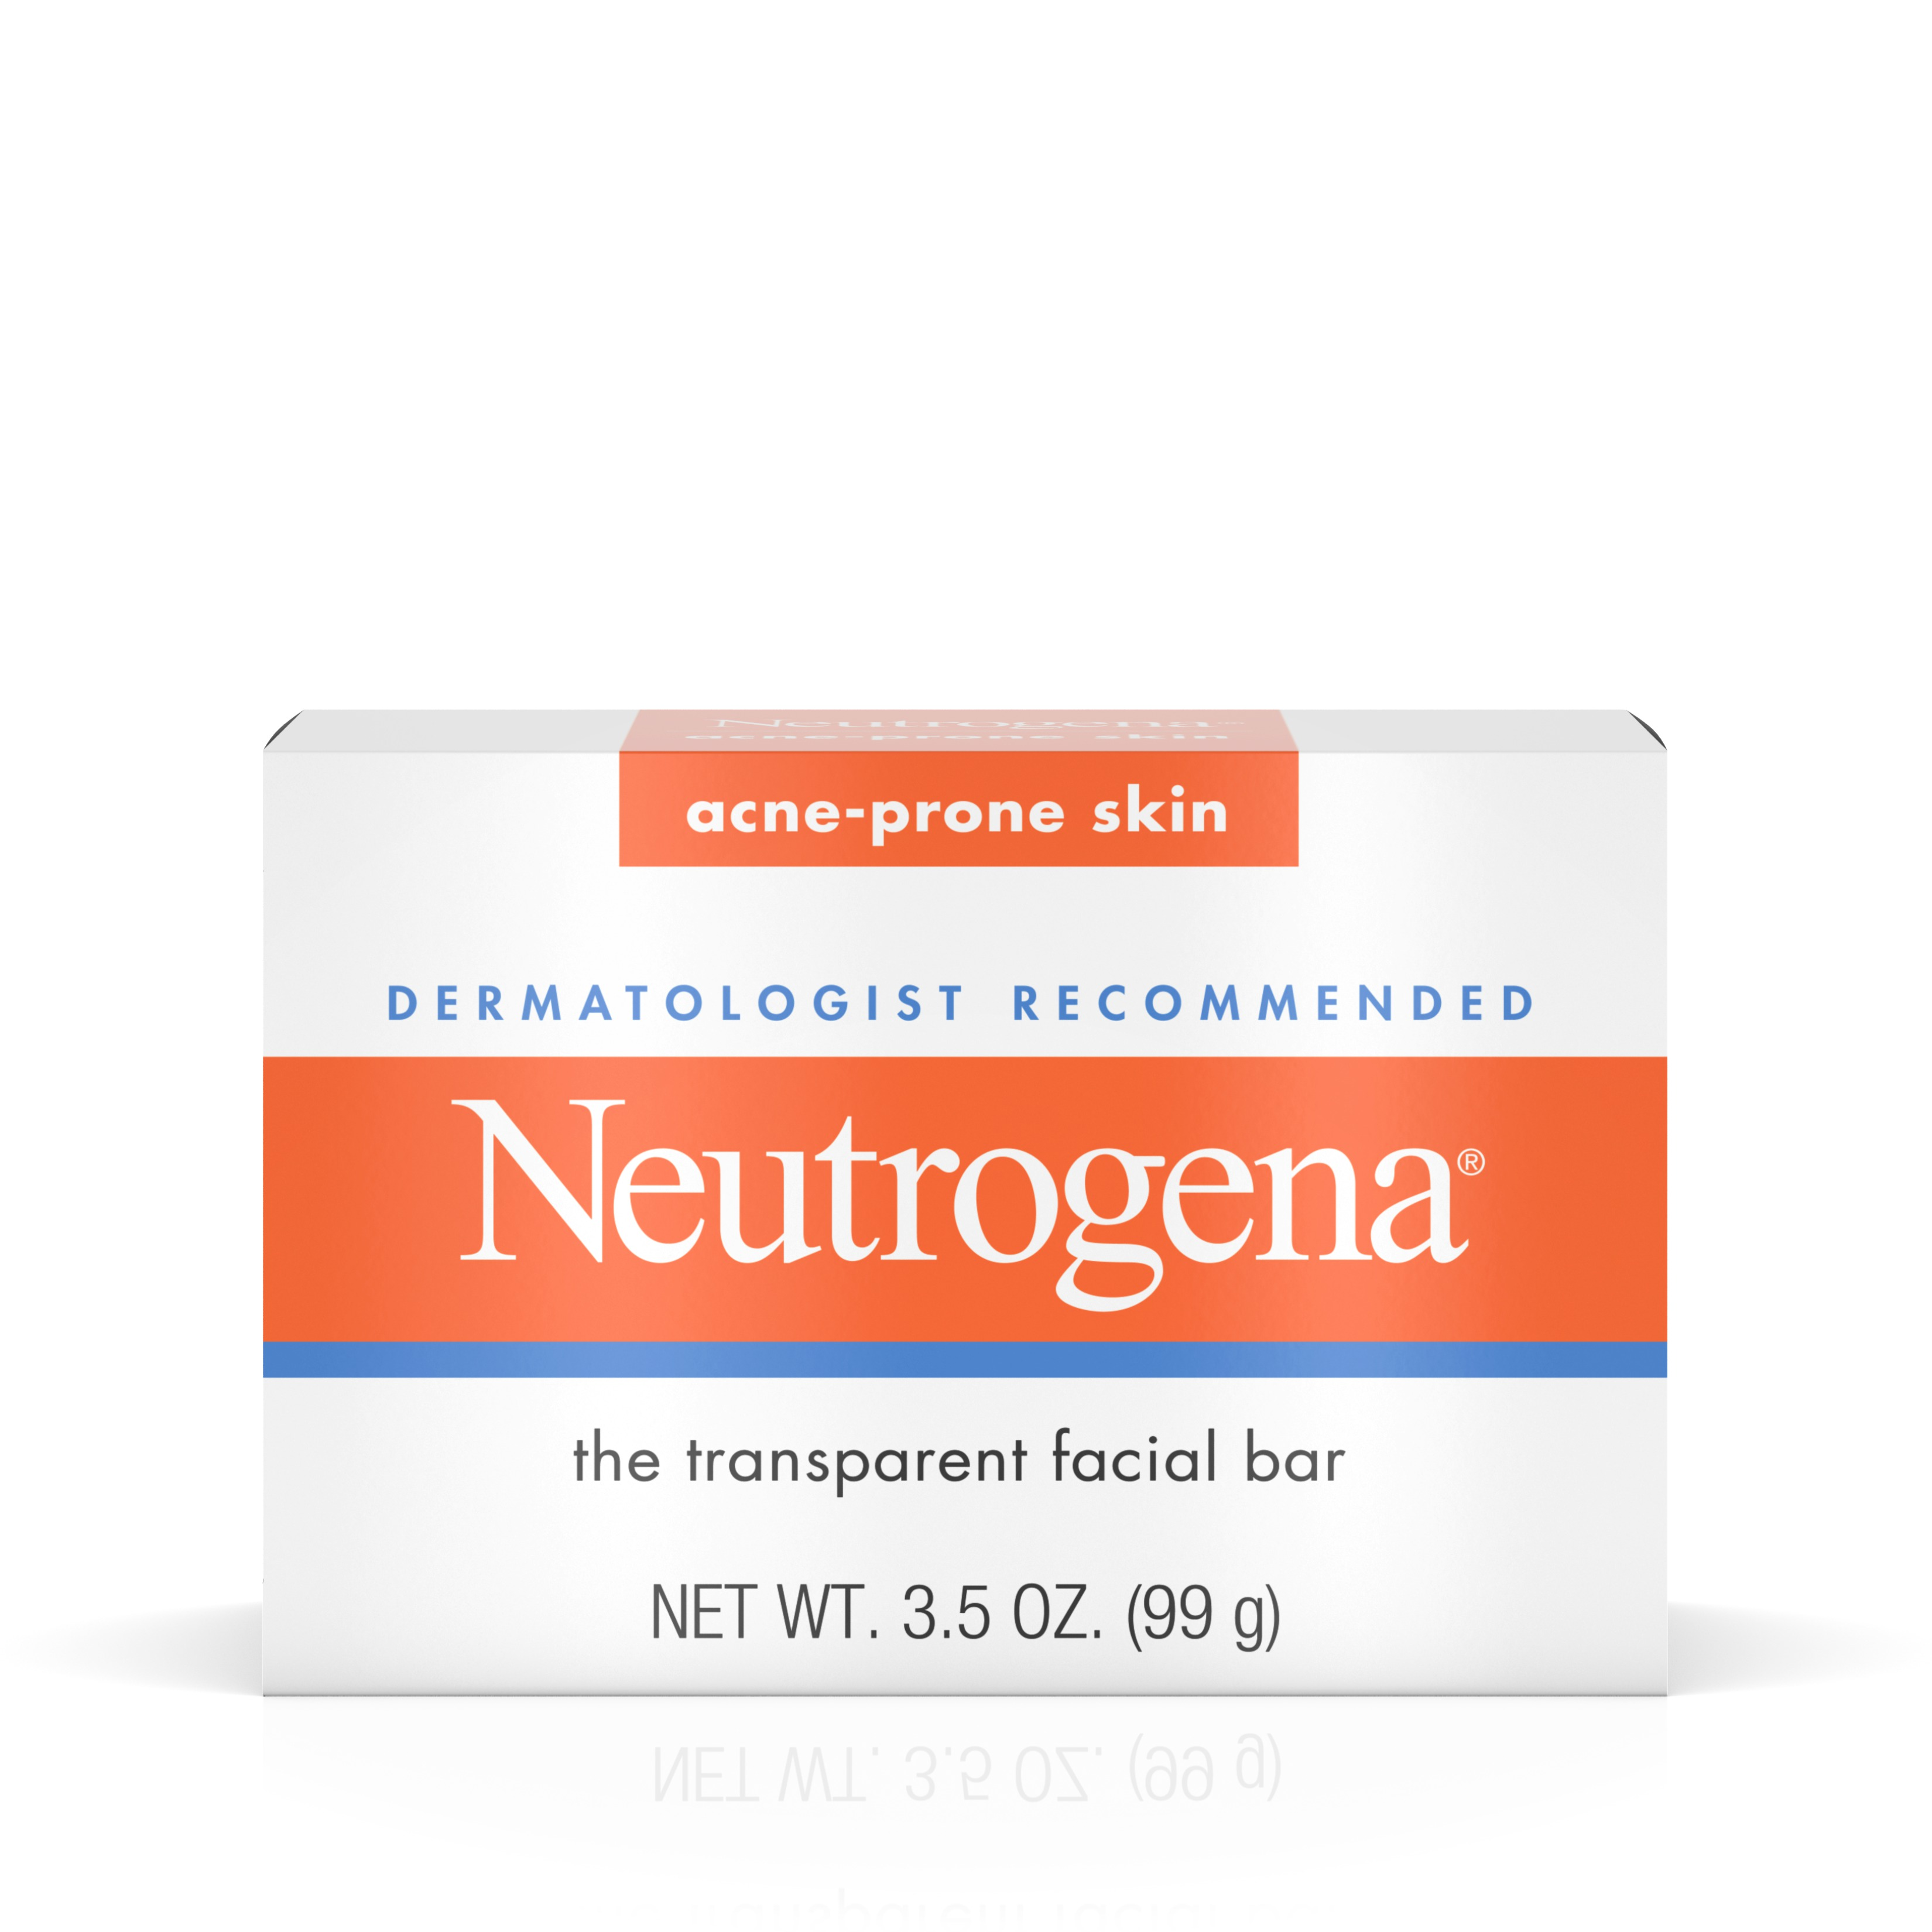 Neutrogena Facial Cleansing Bar Treatment For Acne-Prone Skin, 3.5 Oz. - Walmart.com